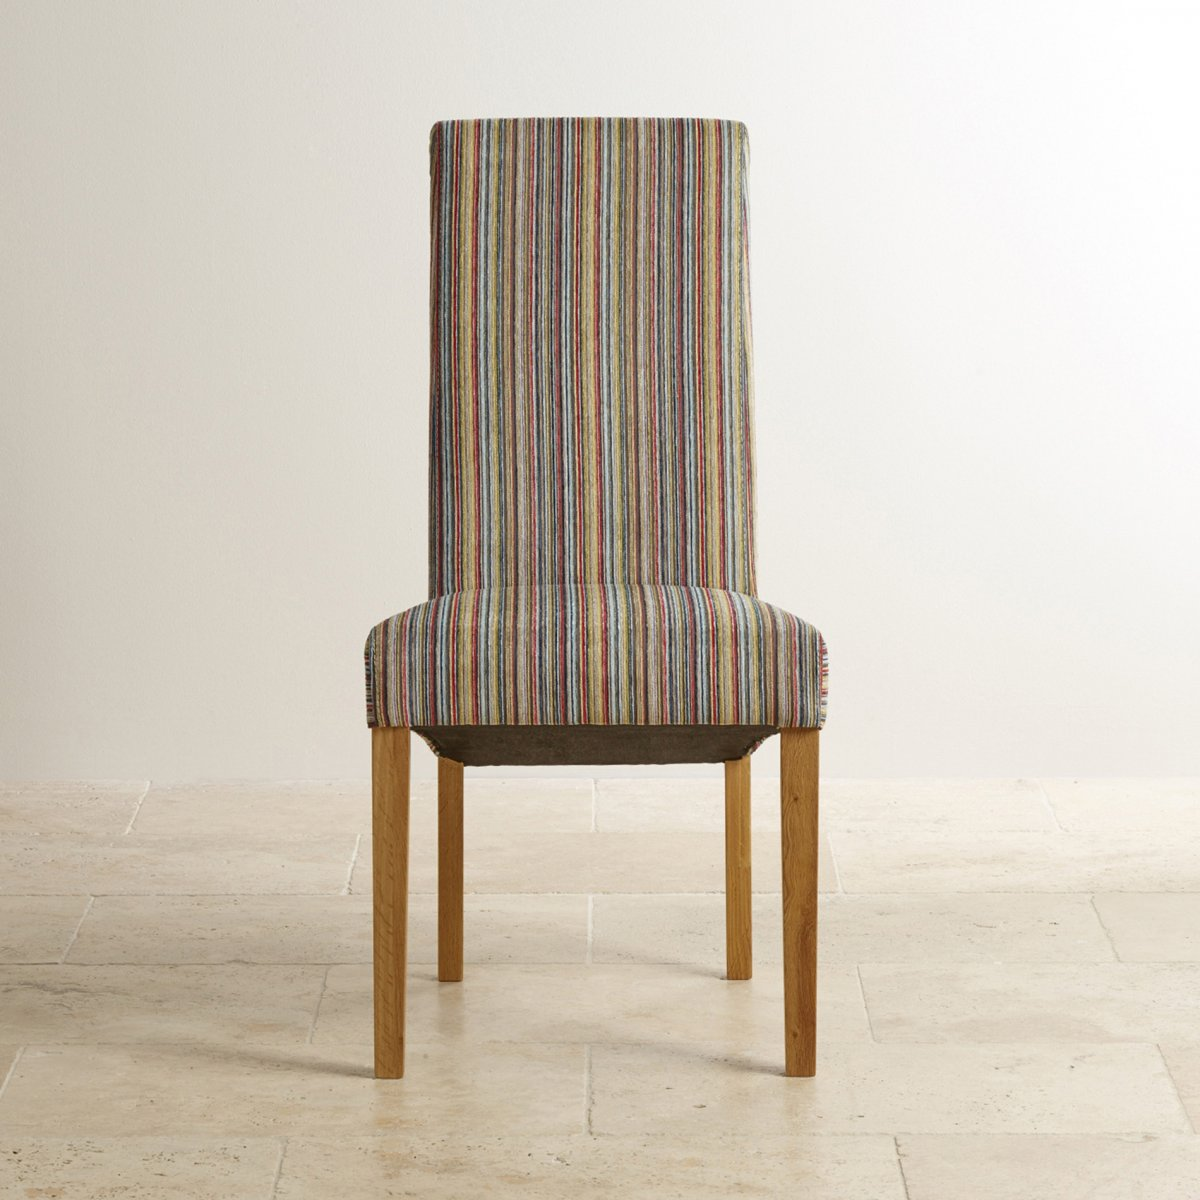 Scroll Back Striped Multi Coloured Fabric Chair With Solid Oak Legs